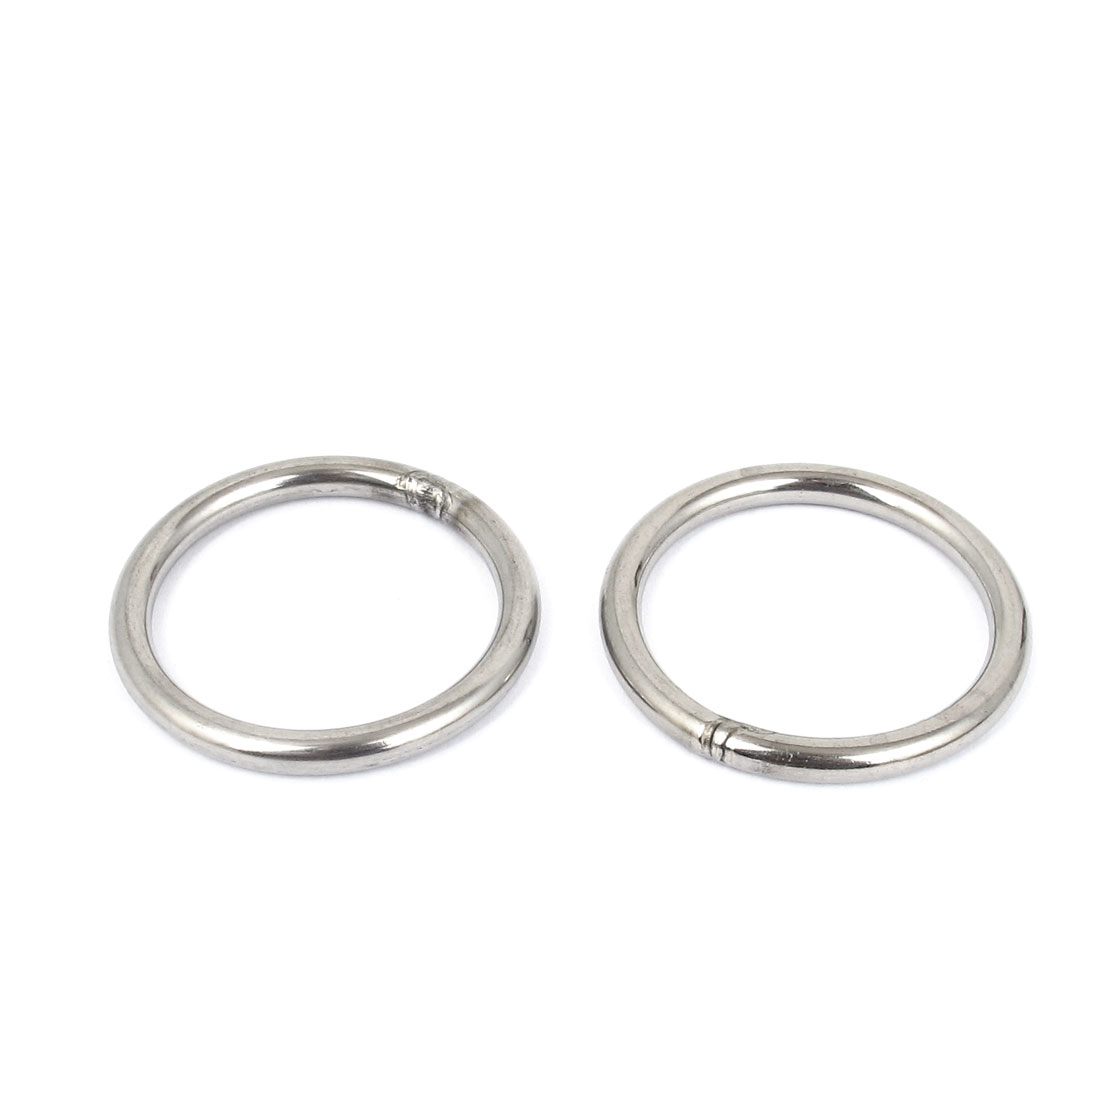 5mmx50mm Stainless Steel Welded O Ring 2pcs for Bags Key Chains Key Rings